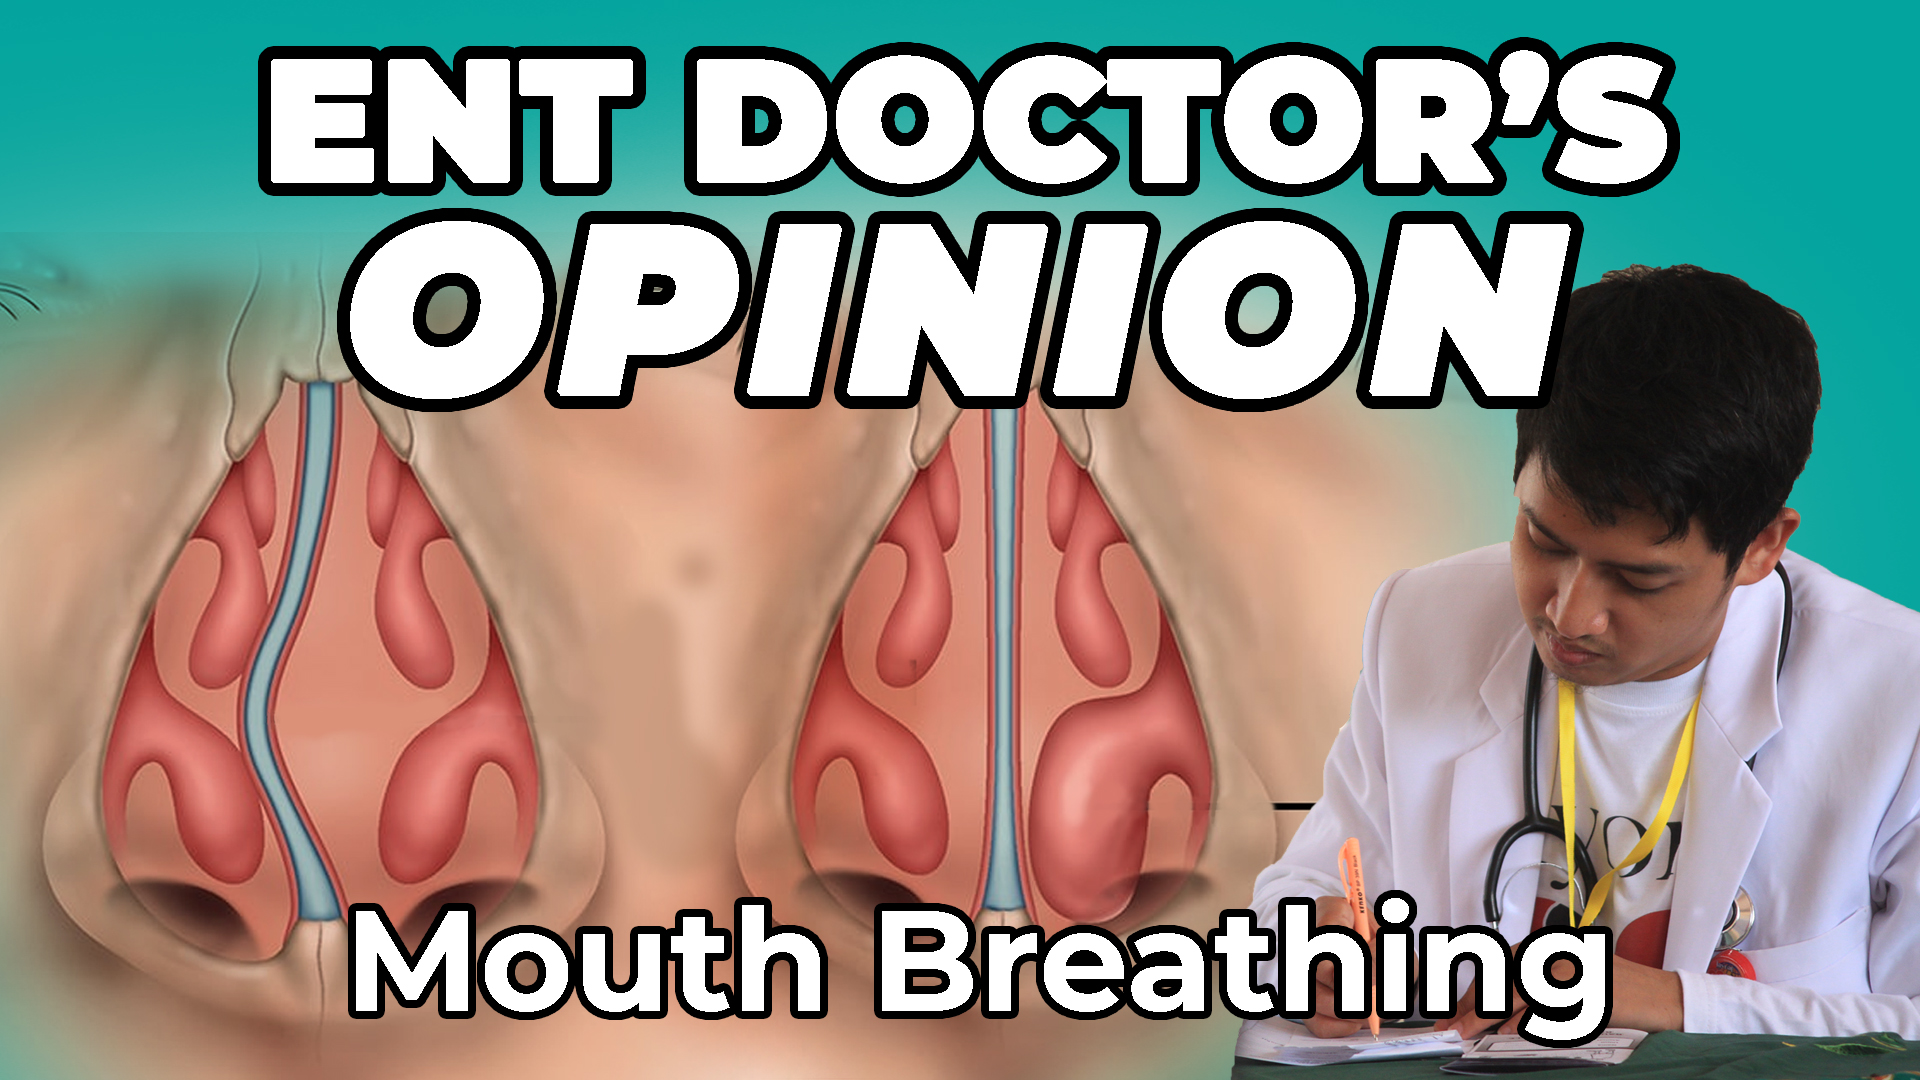 Deviated Septum Or Inflamed Turbinates The Cause Of Mouth Breathing? | Mewing Update | ENT Doctor's Opinion